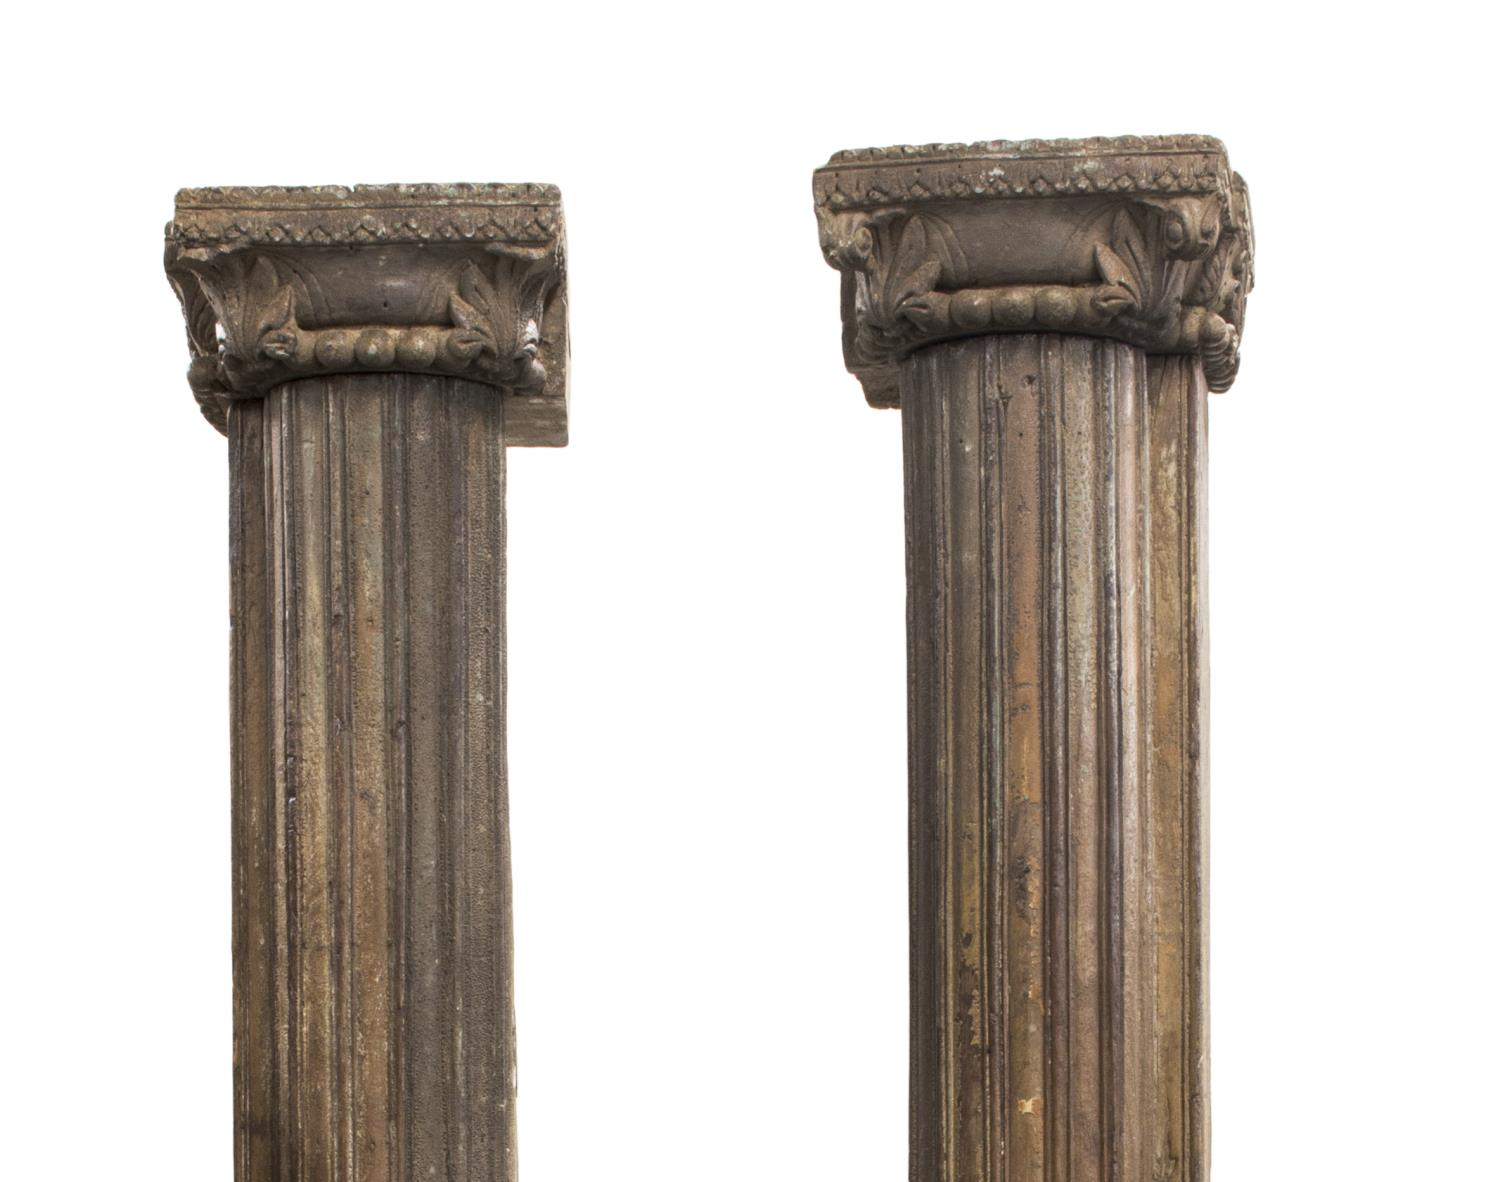 2 architectural carved wooden fluted columns exciting for Architectural wood columns